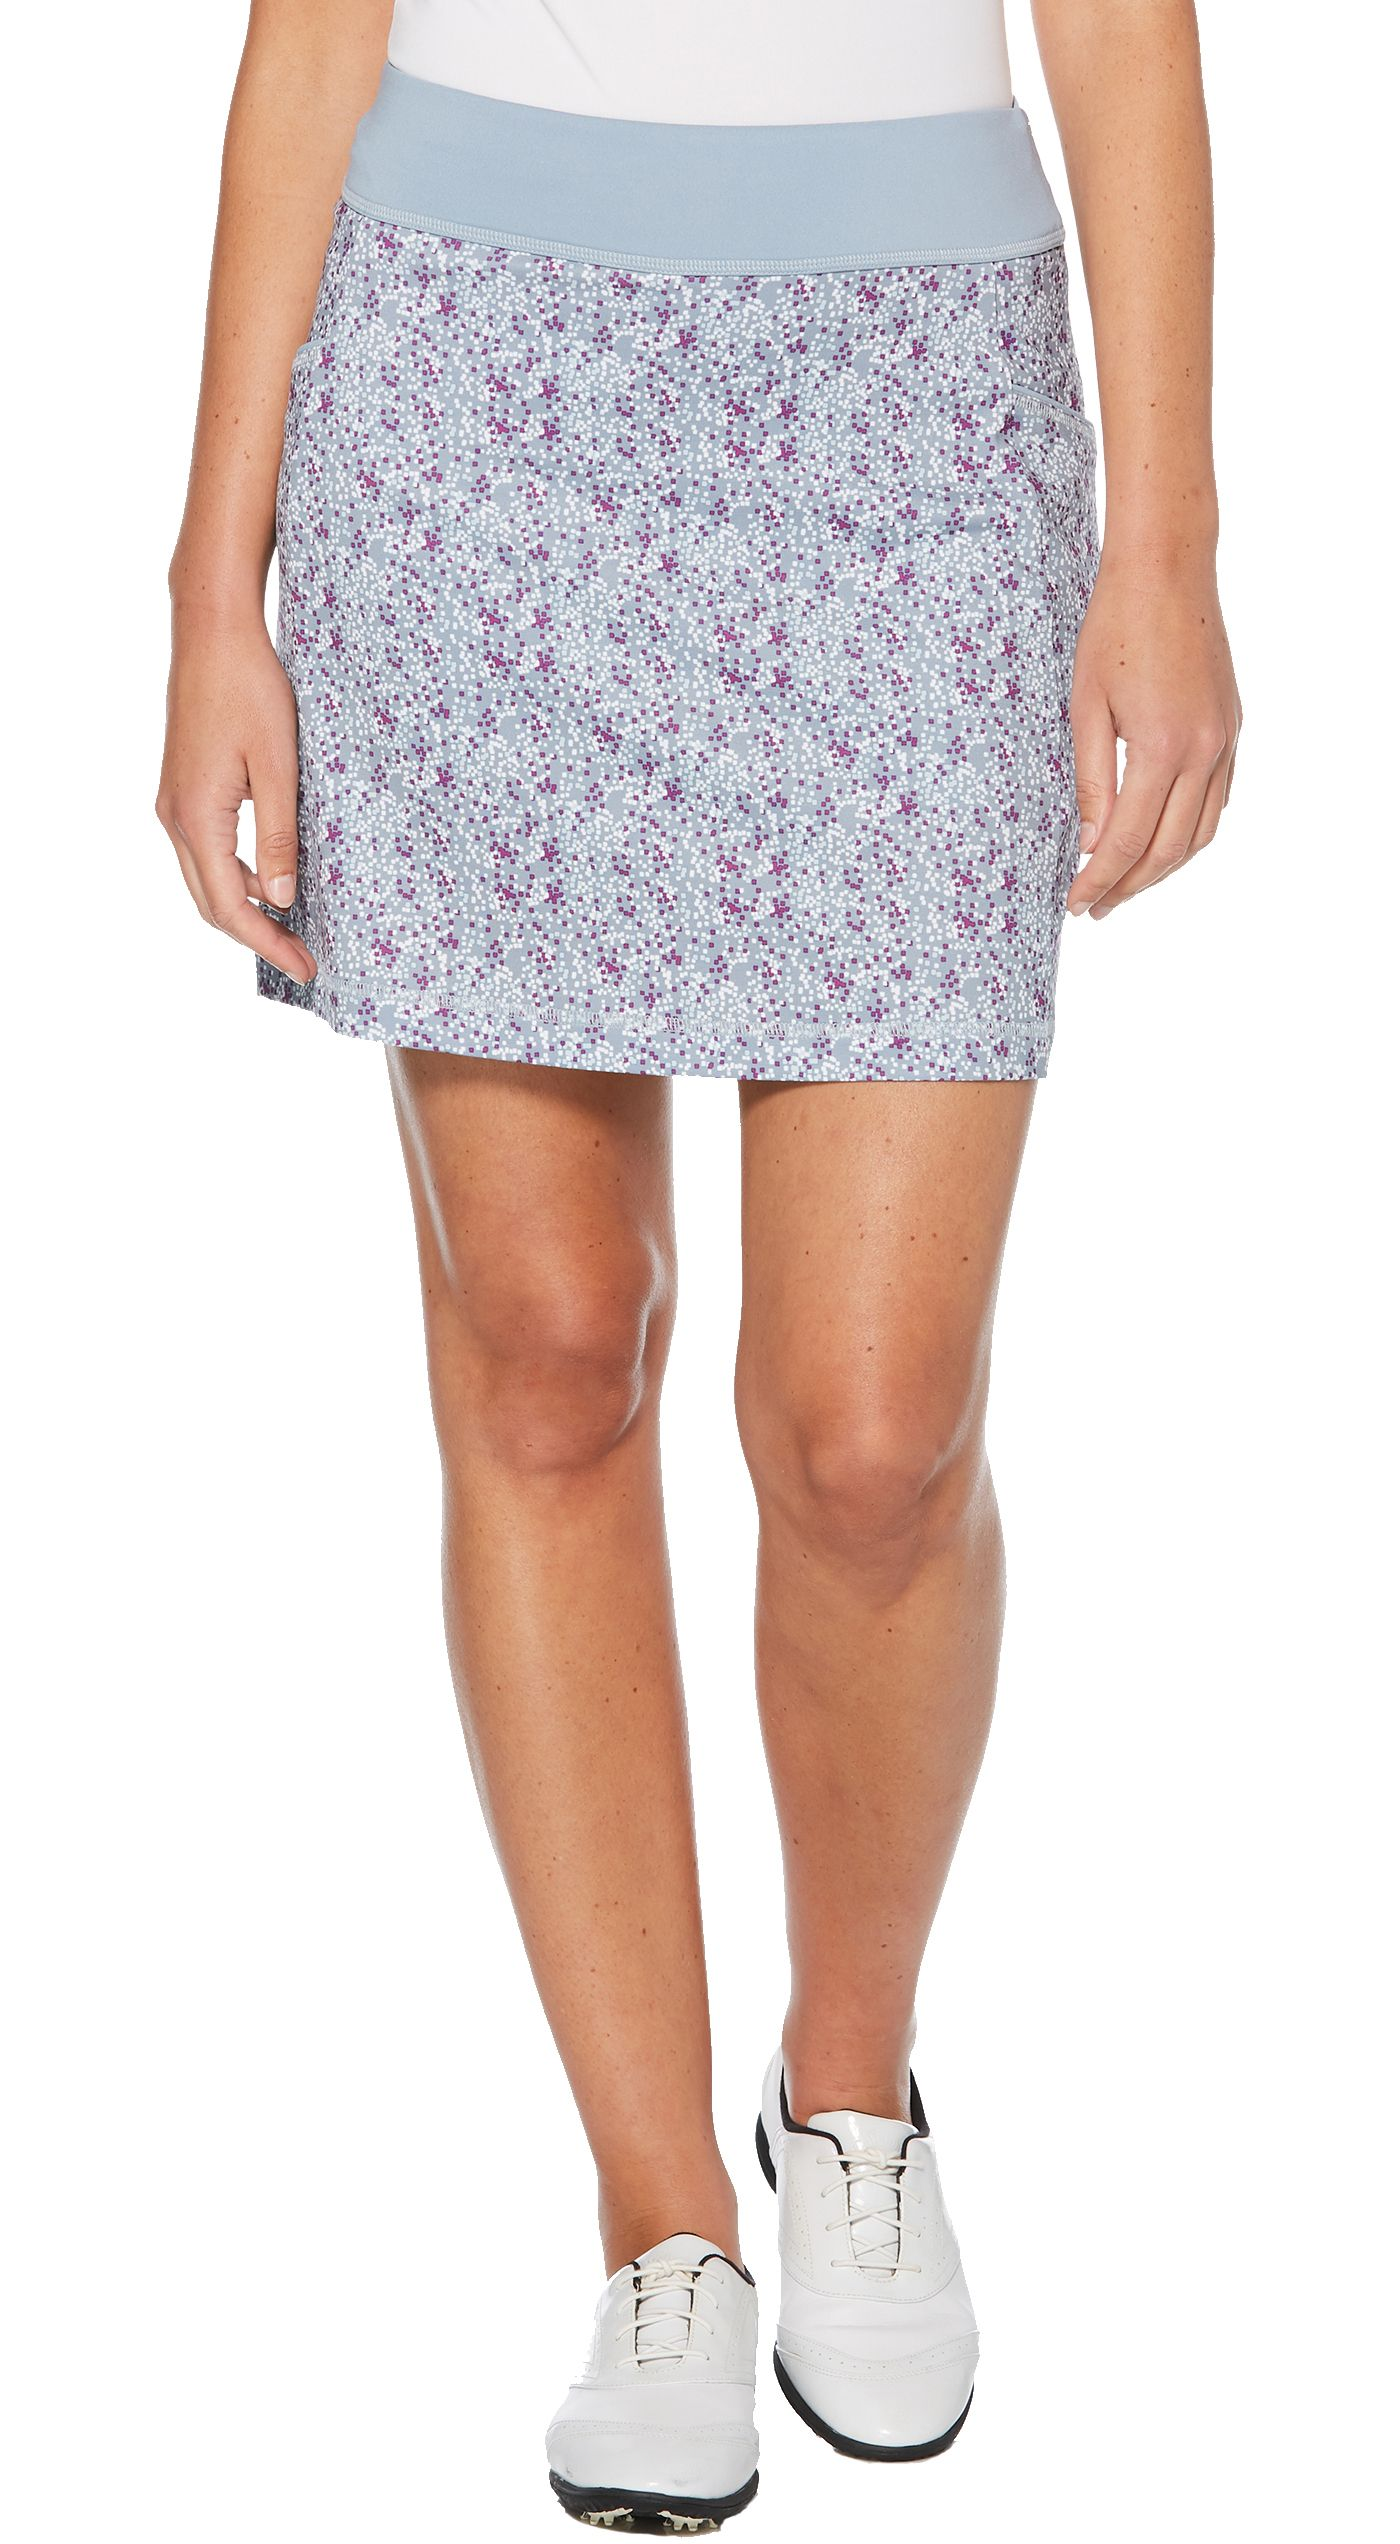 Callaway Women's Confetti Printed Golf Skort - Extended Sizes